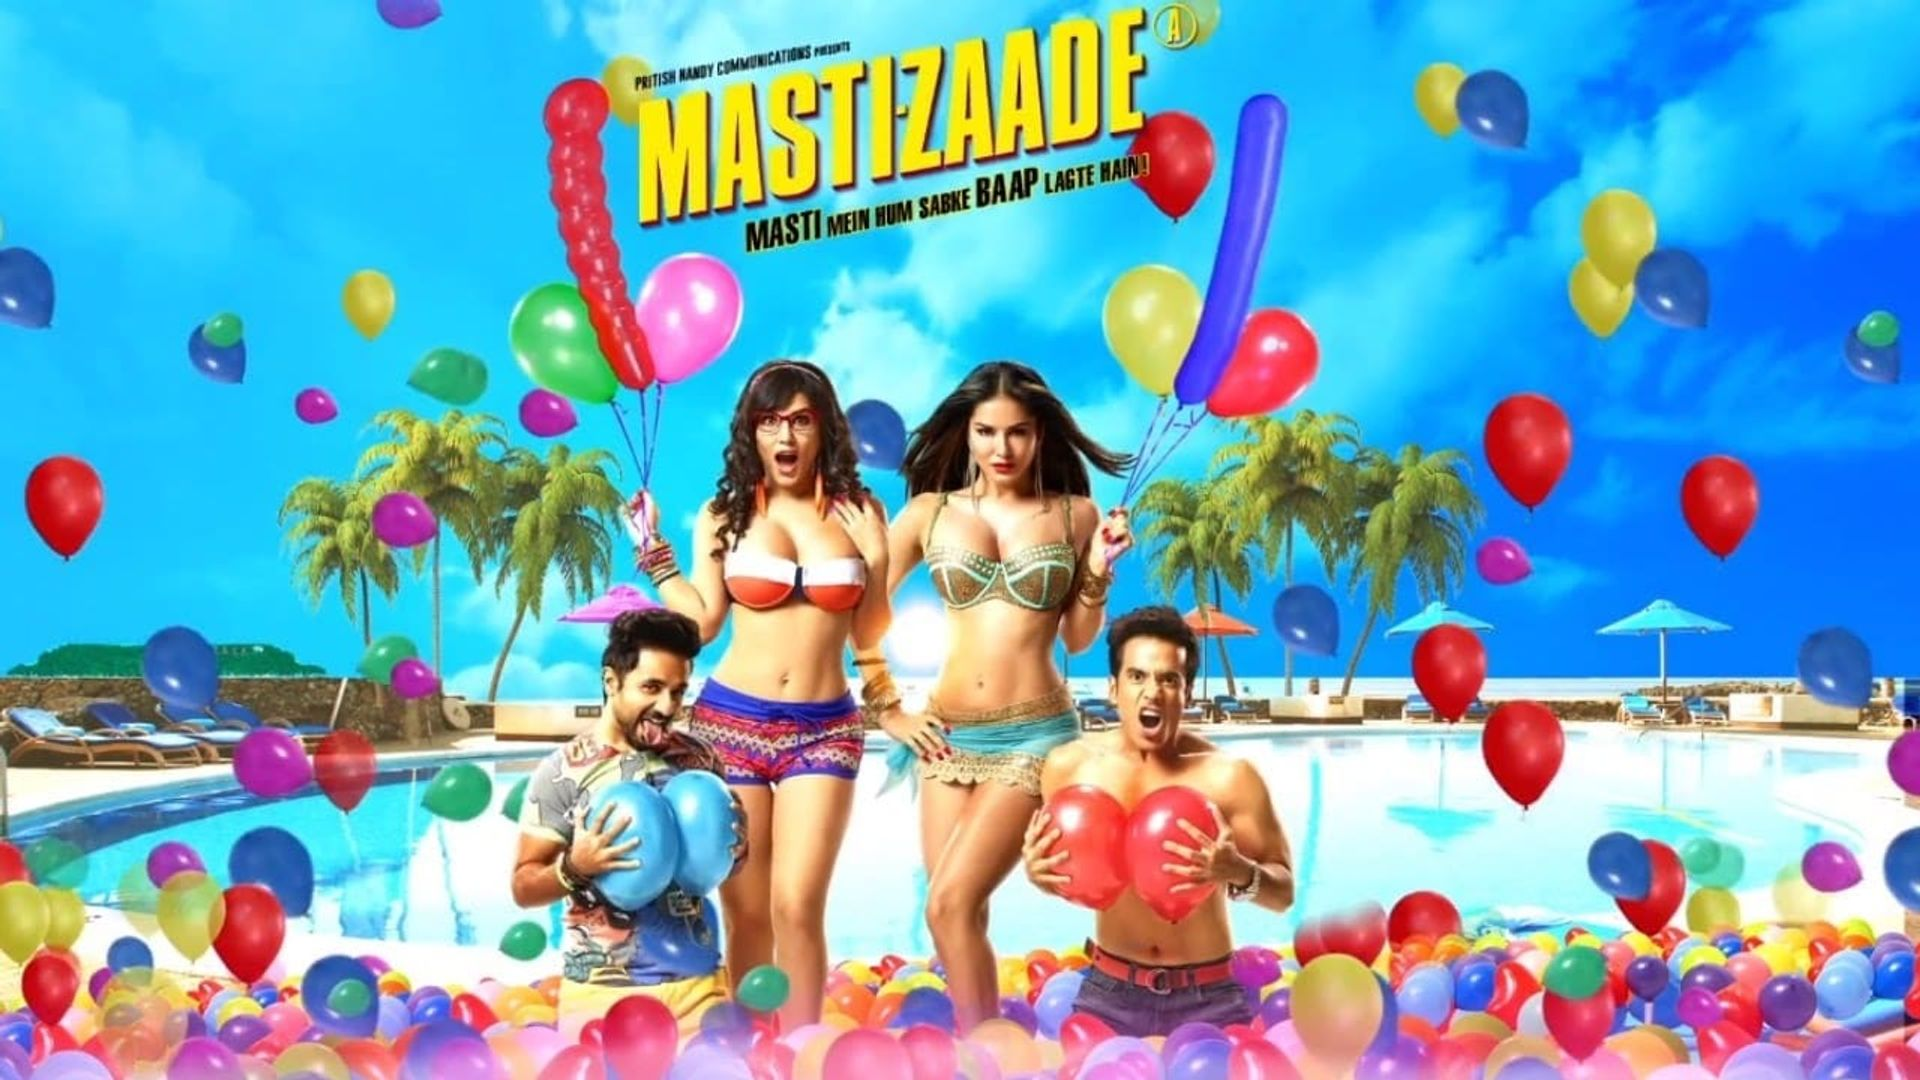 Bruna Laila mastizaade (2016) - where to watch it streaming online